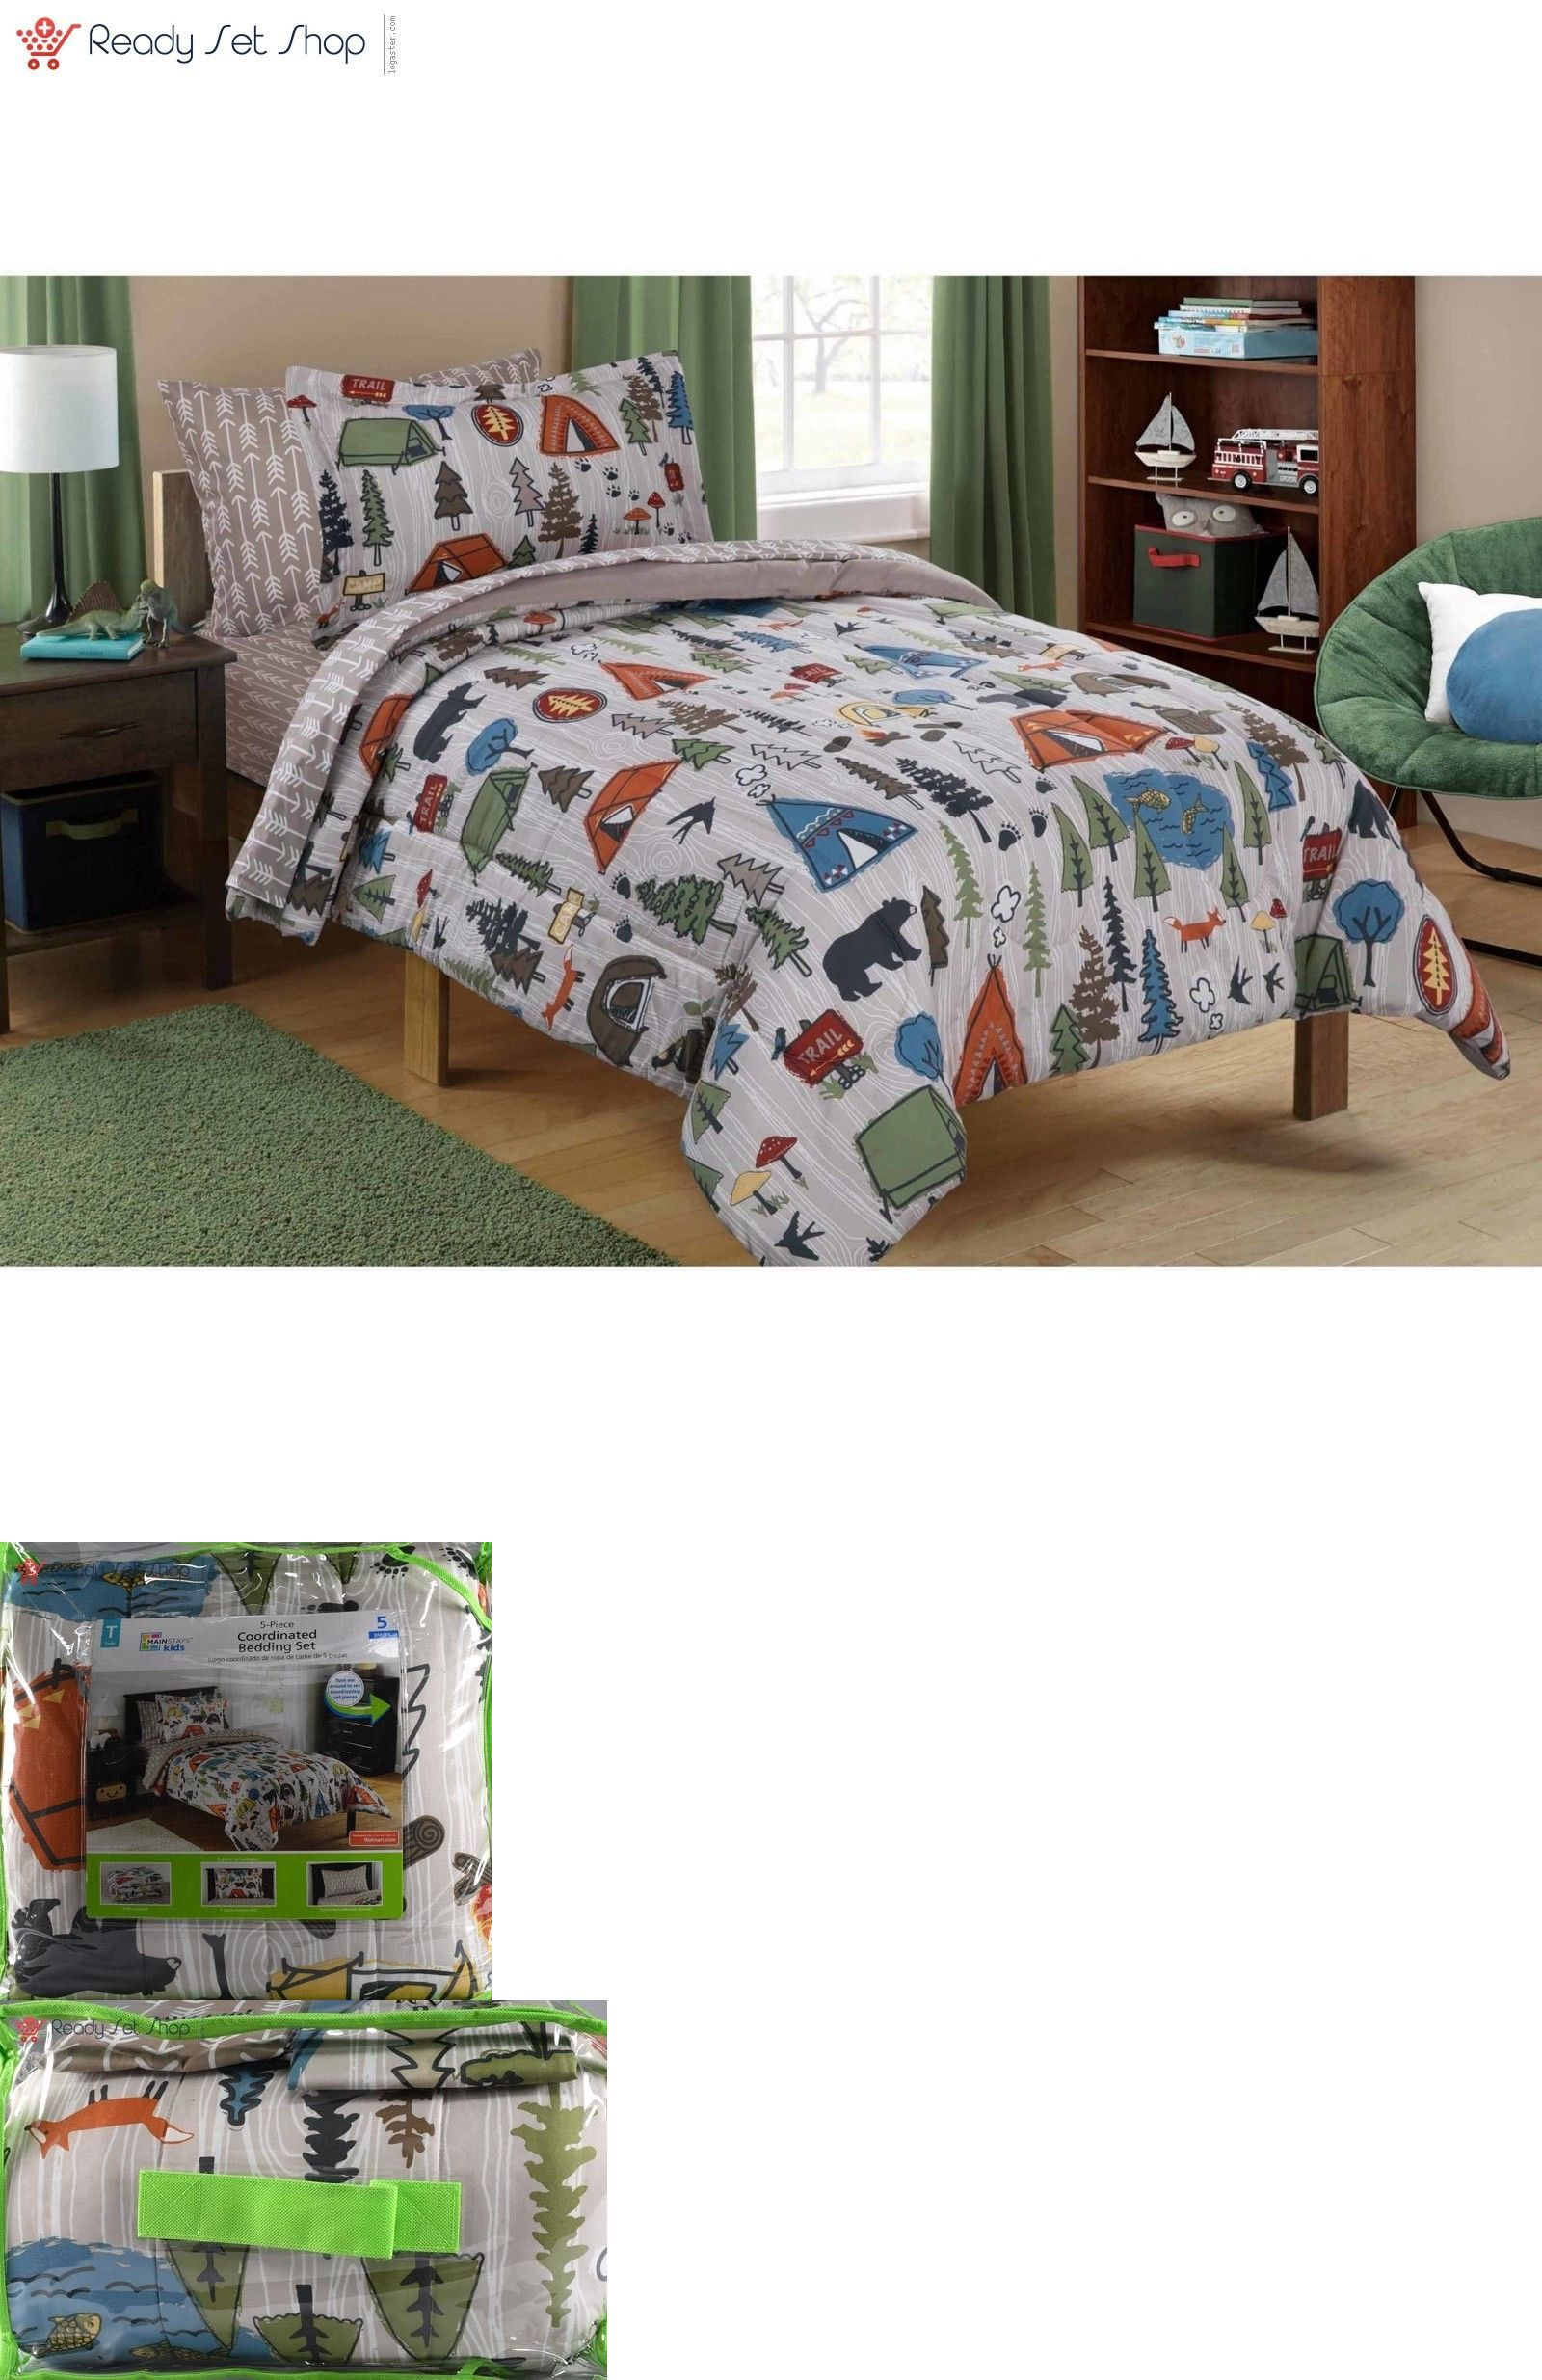 bunk bedroom for about storage beds set s know bed furniture ashley must parents sets ideas children things room kids childrens